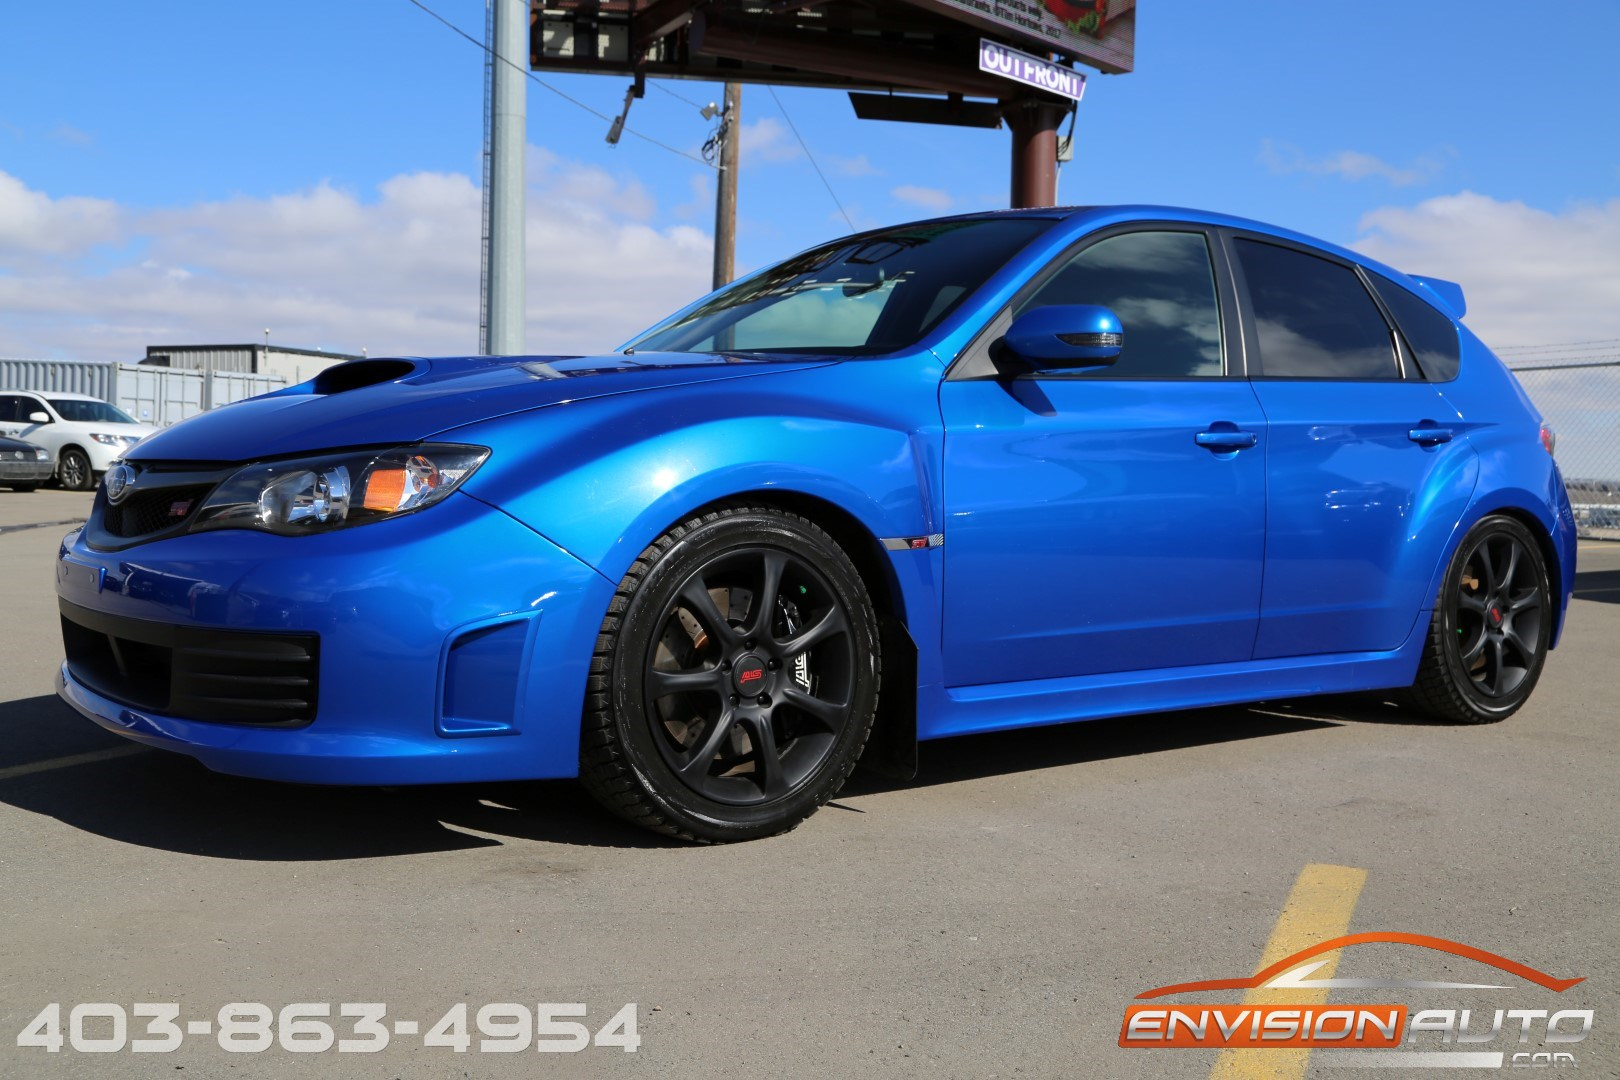 2010 subaru impreza wrx sti custom built engine only. Black Bedroom Furniture Sets. Home Design Ideas